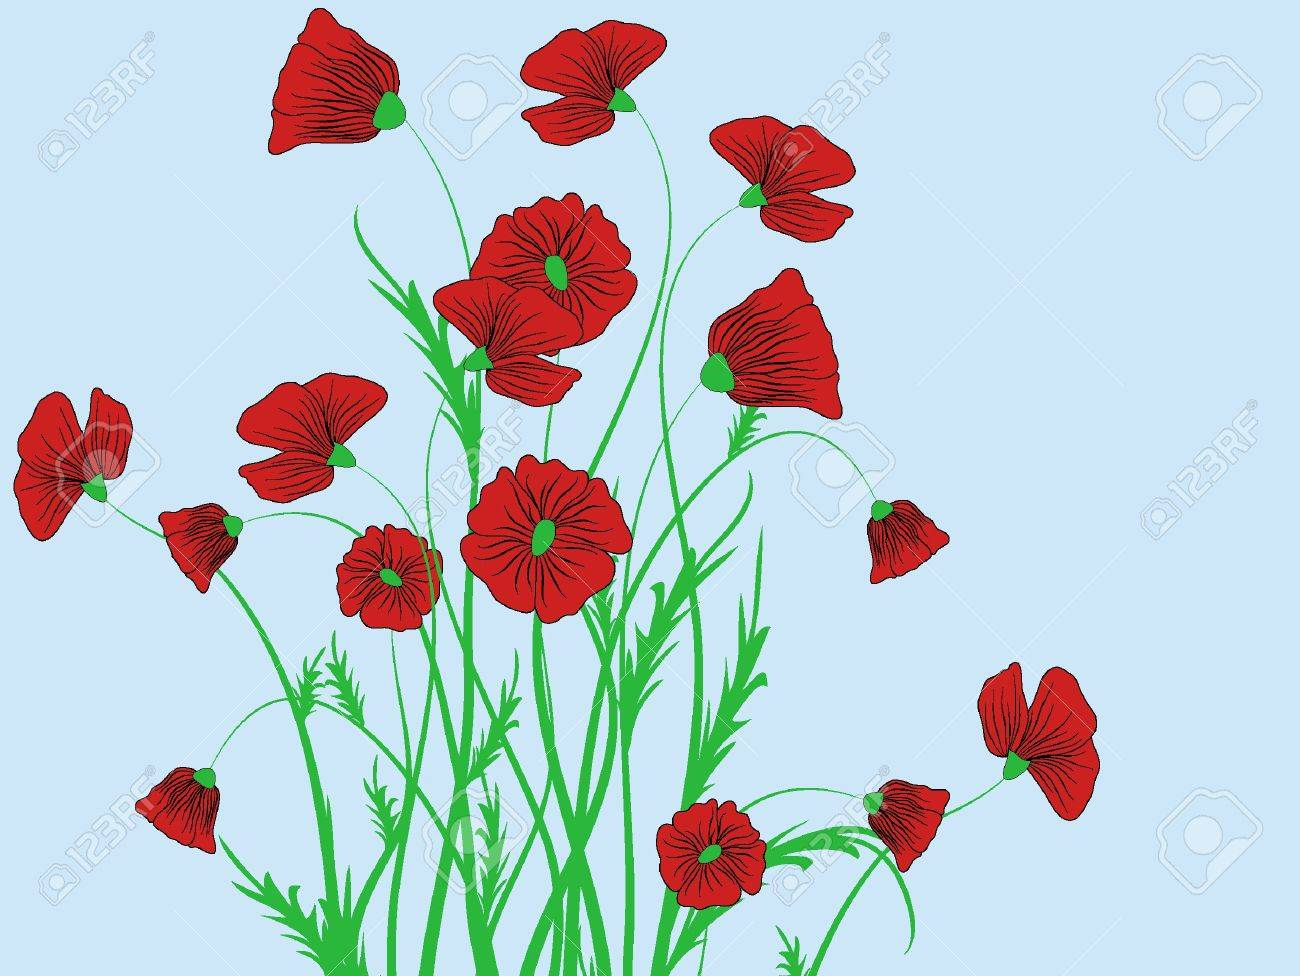 Poppy Flower Pattern Abstraction Illustration Stock Photo Picture